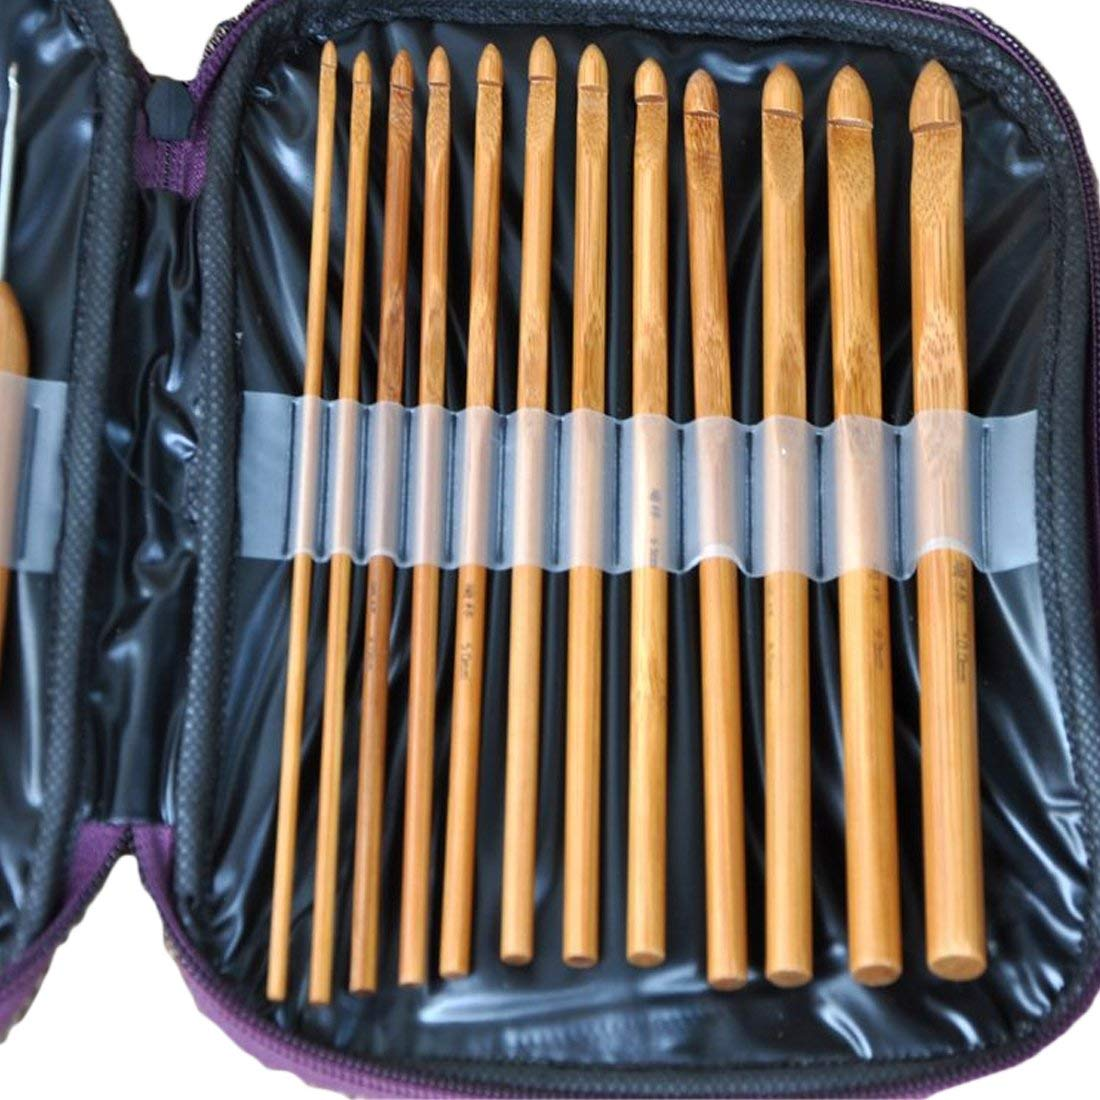 Yevison Bamboo Crochet Hooks Needles Knit Weave Craft Yarn Sewing Tools Knitting Bamboo Crochet Hook Set with Case High Quality